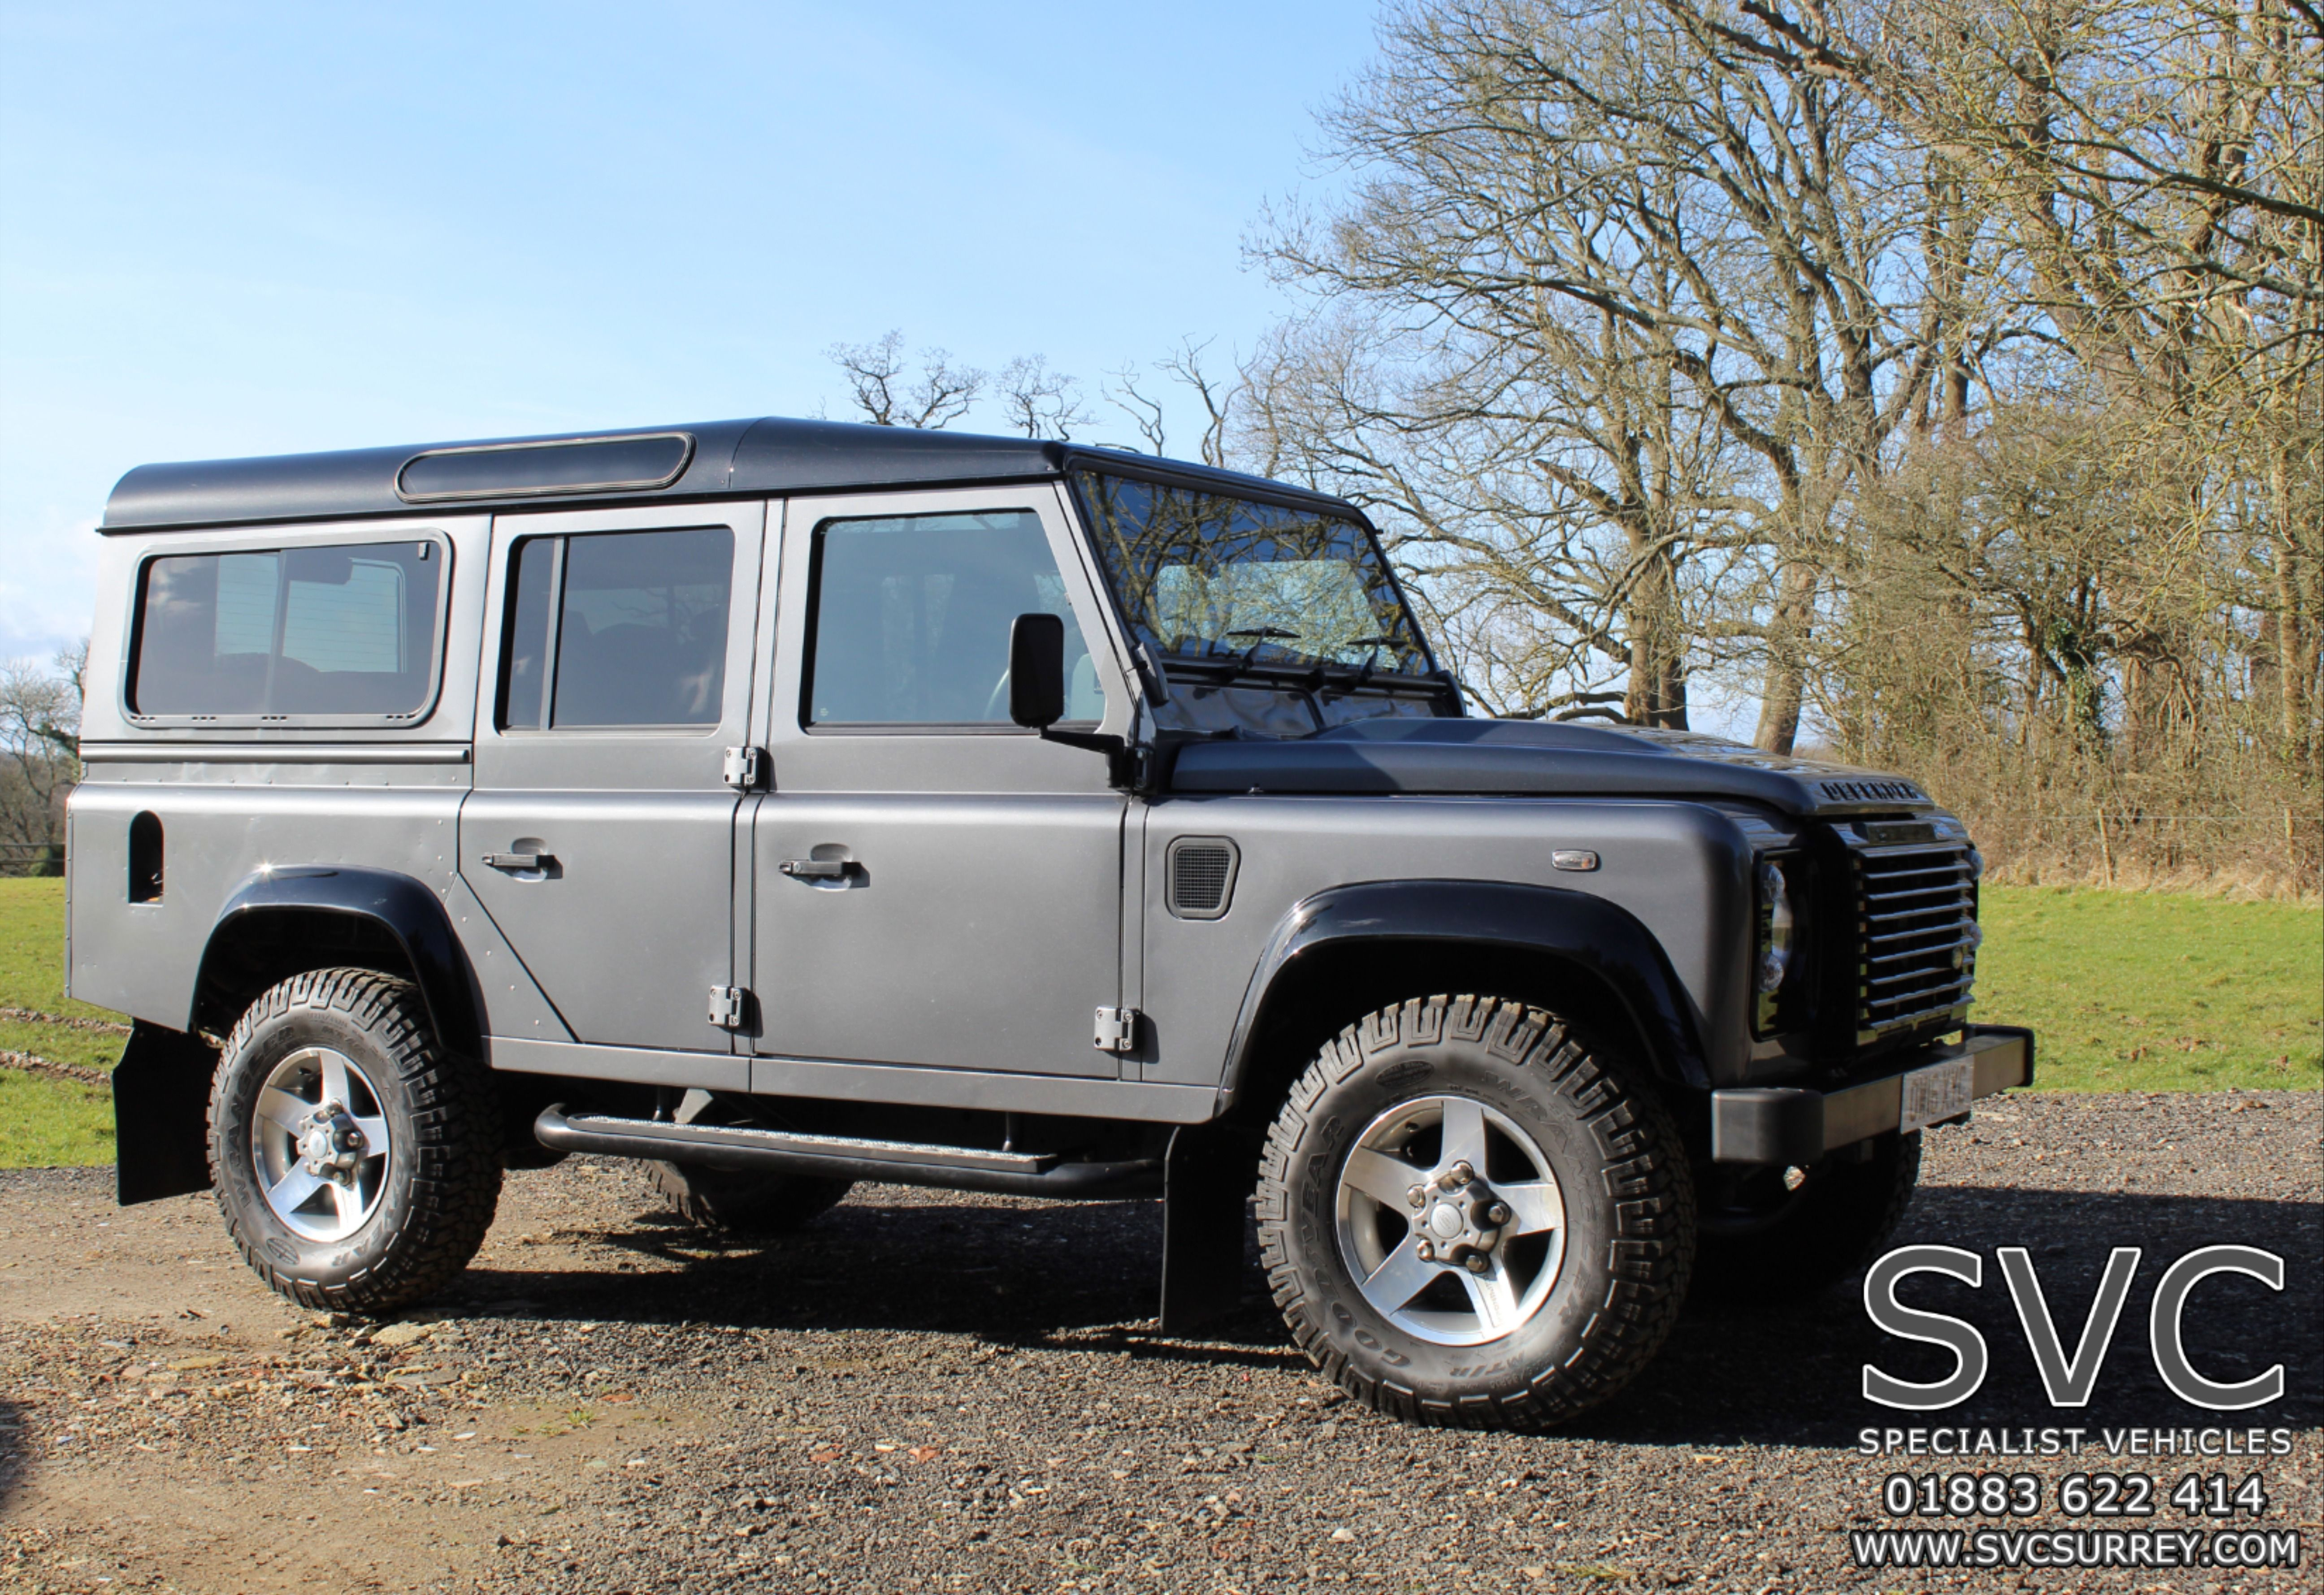 Land Rover Defender 110 Landmark Edition Land Rover Defender Land Rover Land Rover Defender 110